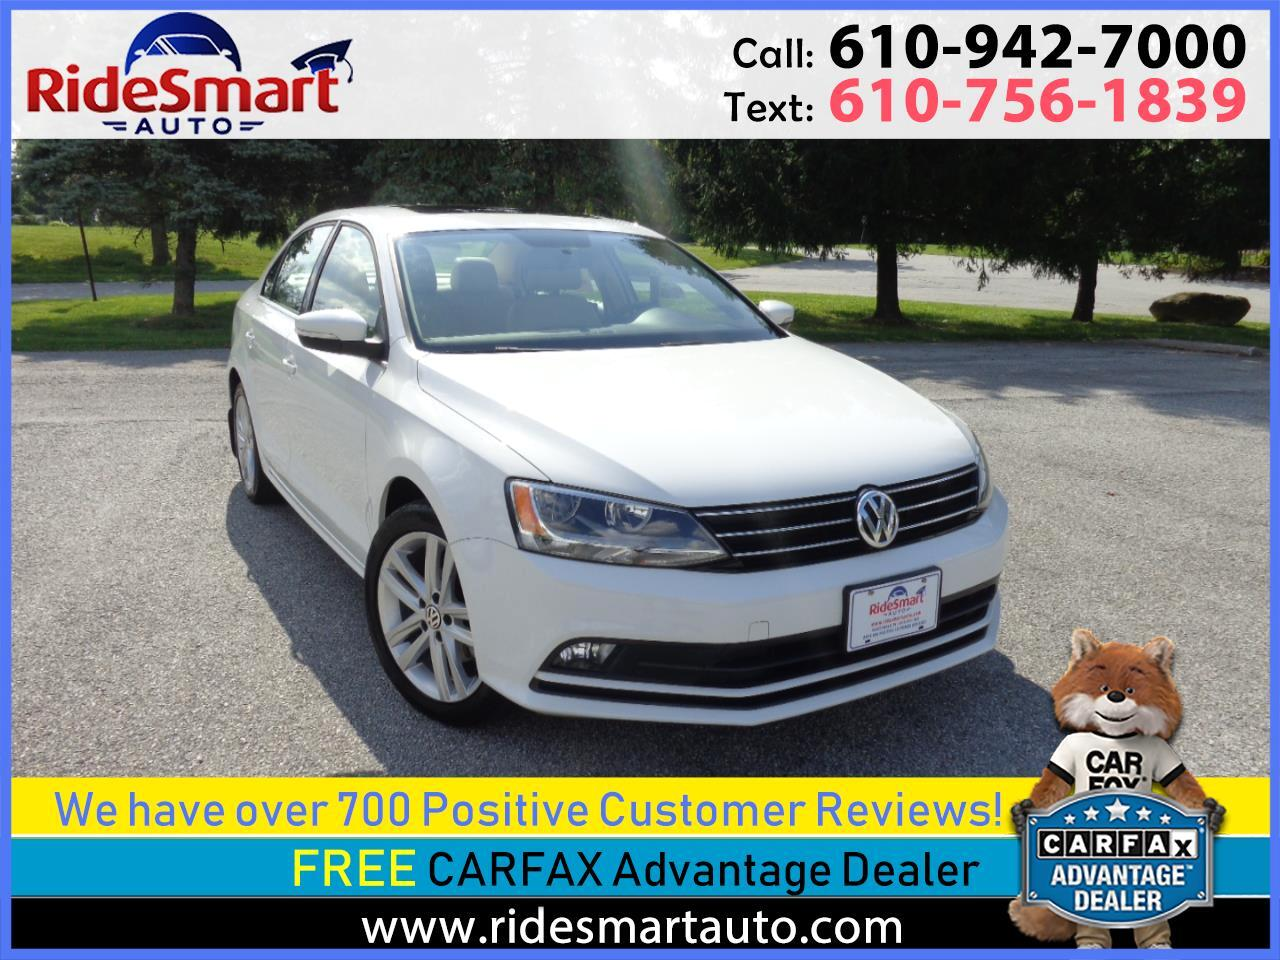 2015 Volkswagen Jetta TDi SEL 6 Speed Manual Trans-Nav-Rear Camera